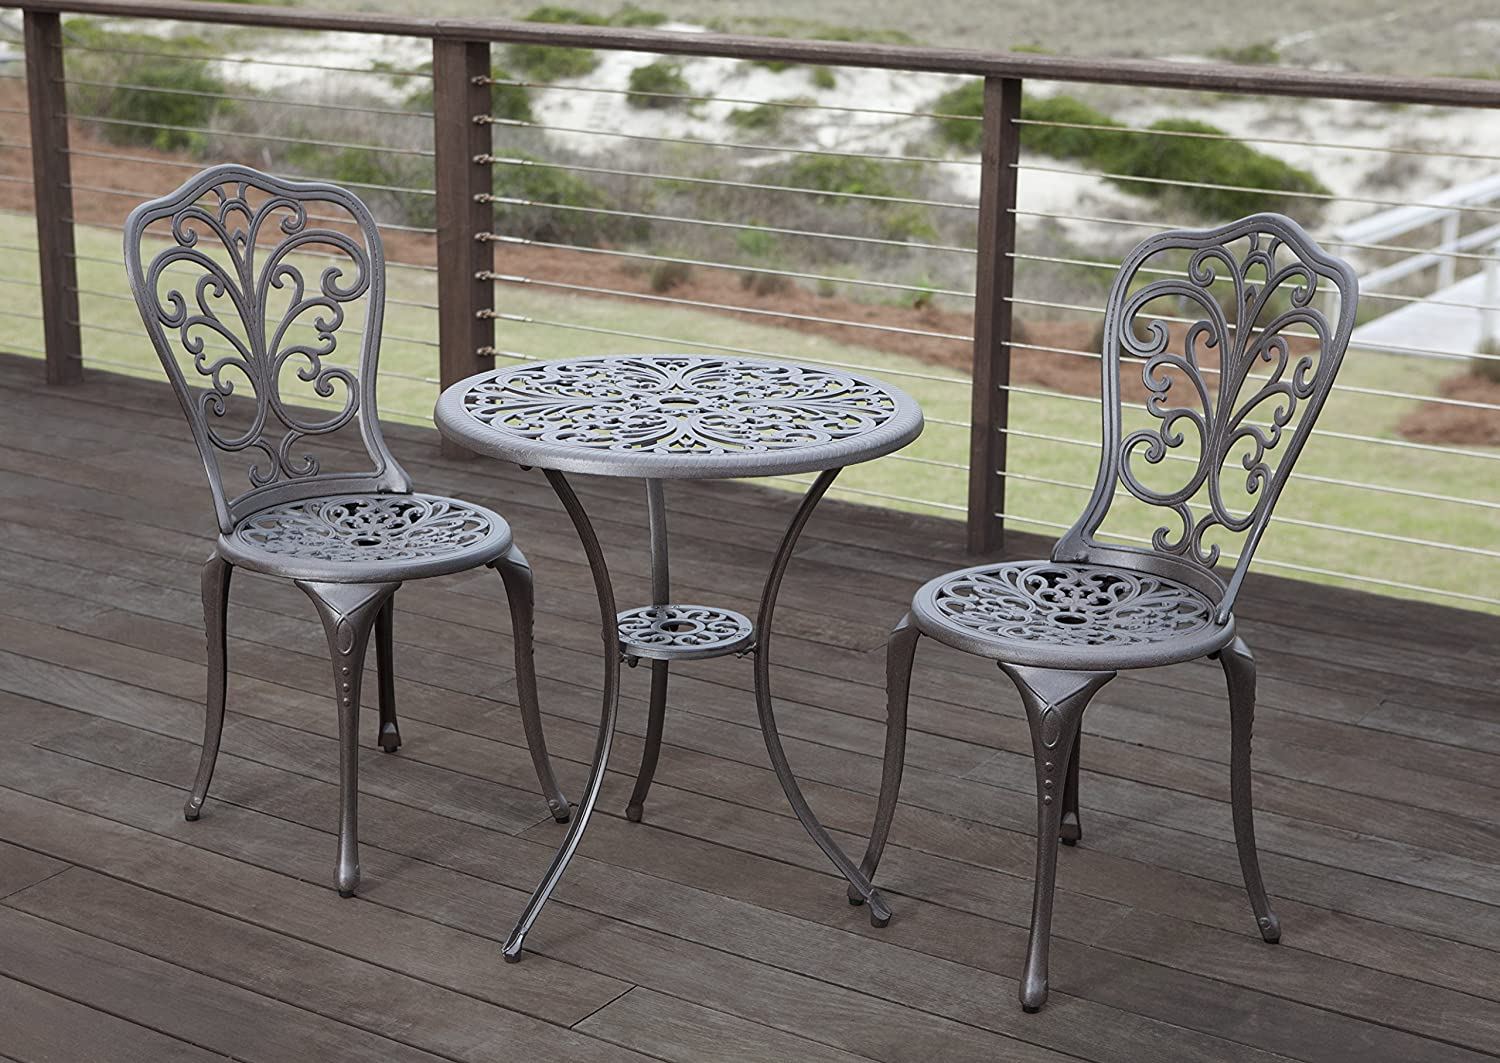 Outdoor Metal Table Outdoor Metal Table A Treelopping